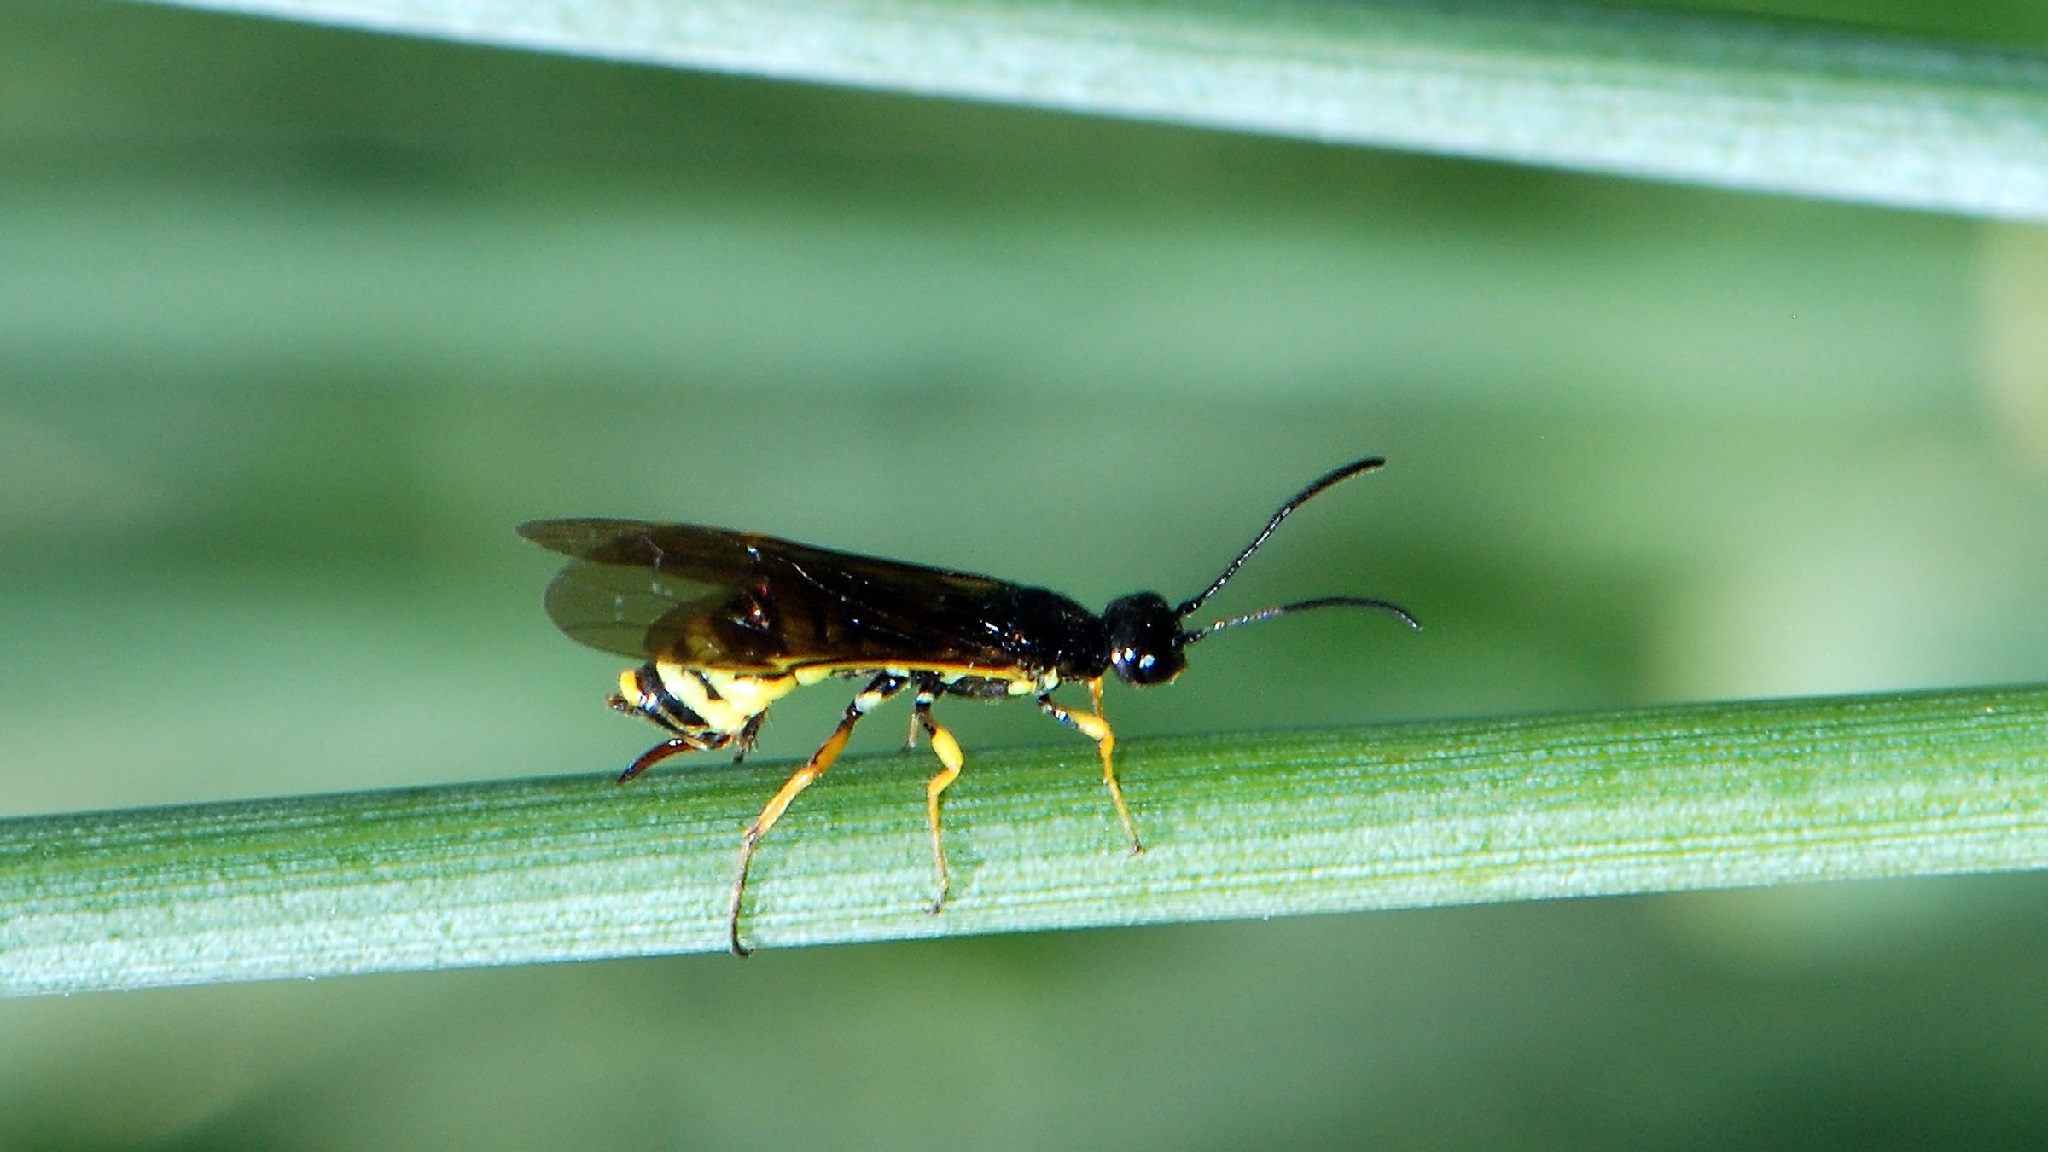 This agronomic image shows a sawfly.